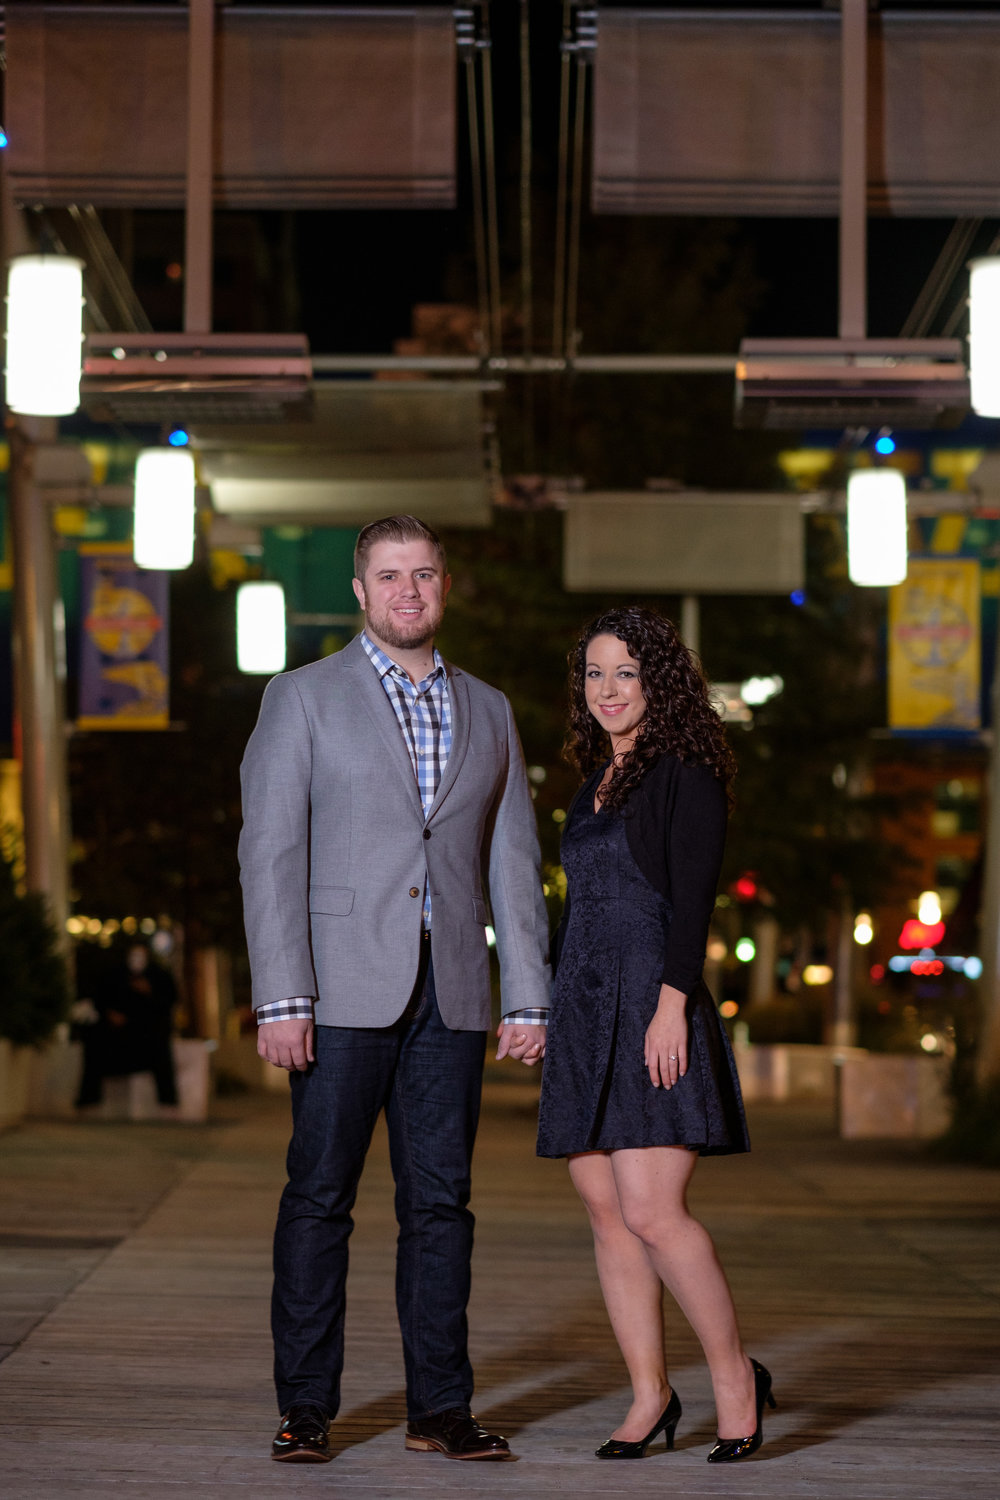 Downtown-Indianapolis-night-engagement-pictures-16.jpg